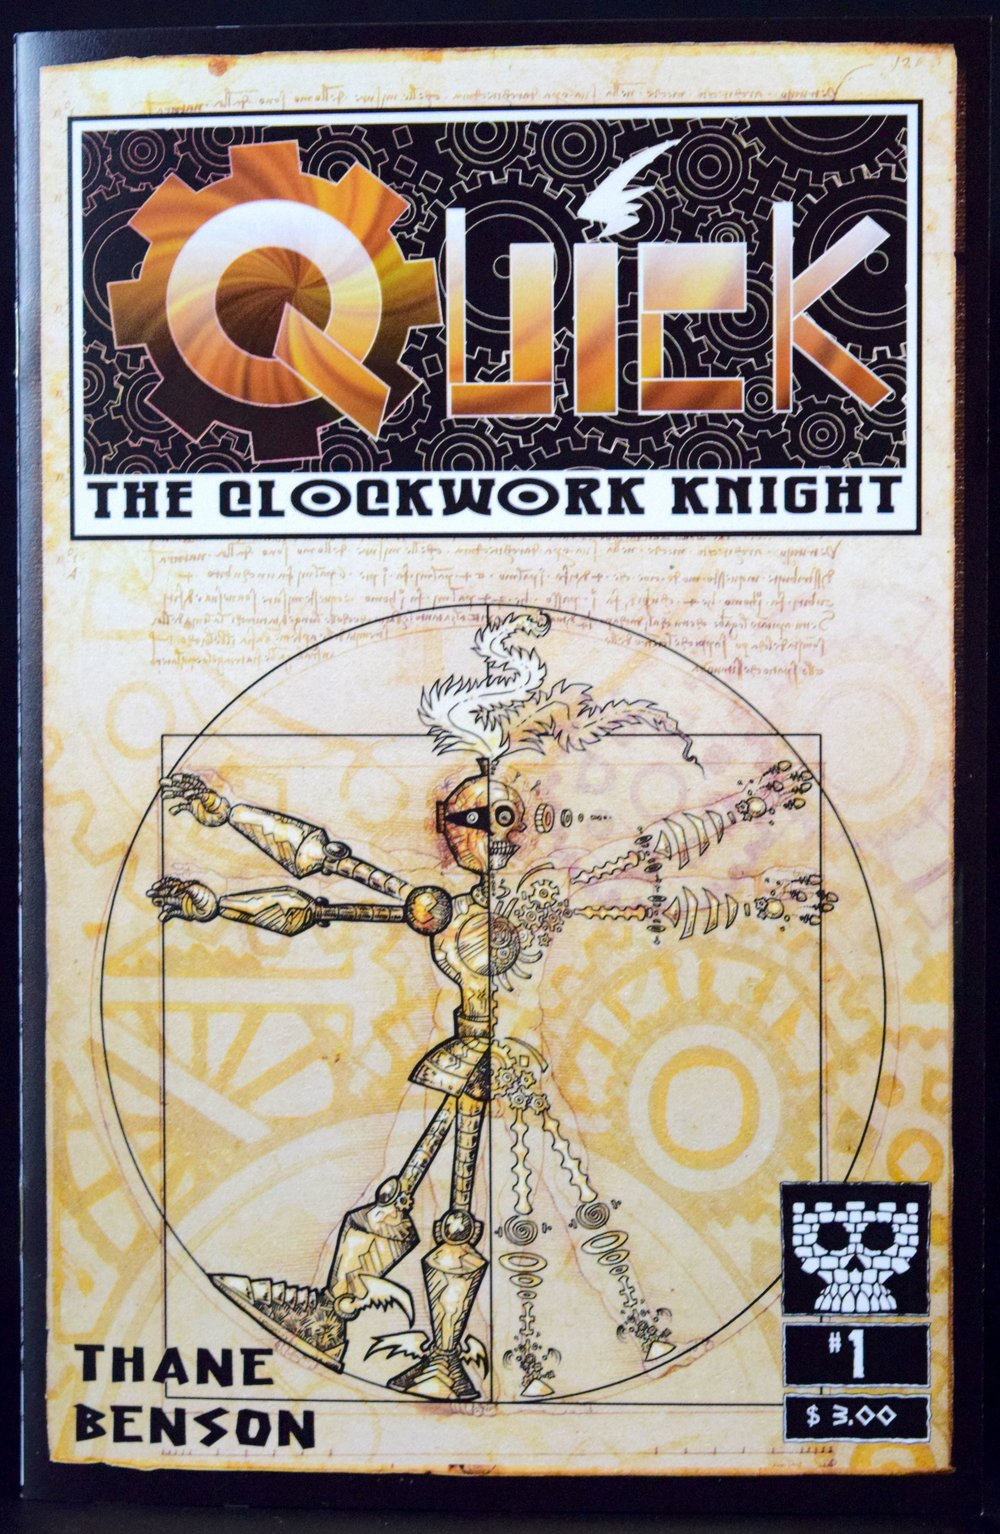 Quick the Clockwork Knight #1  by  Thane Benson .